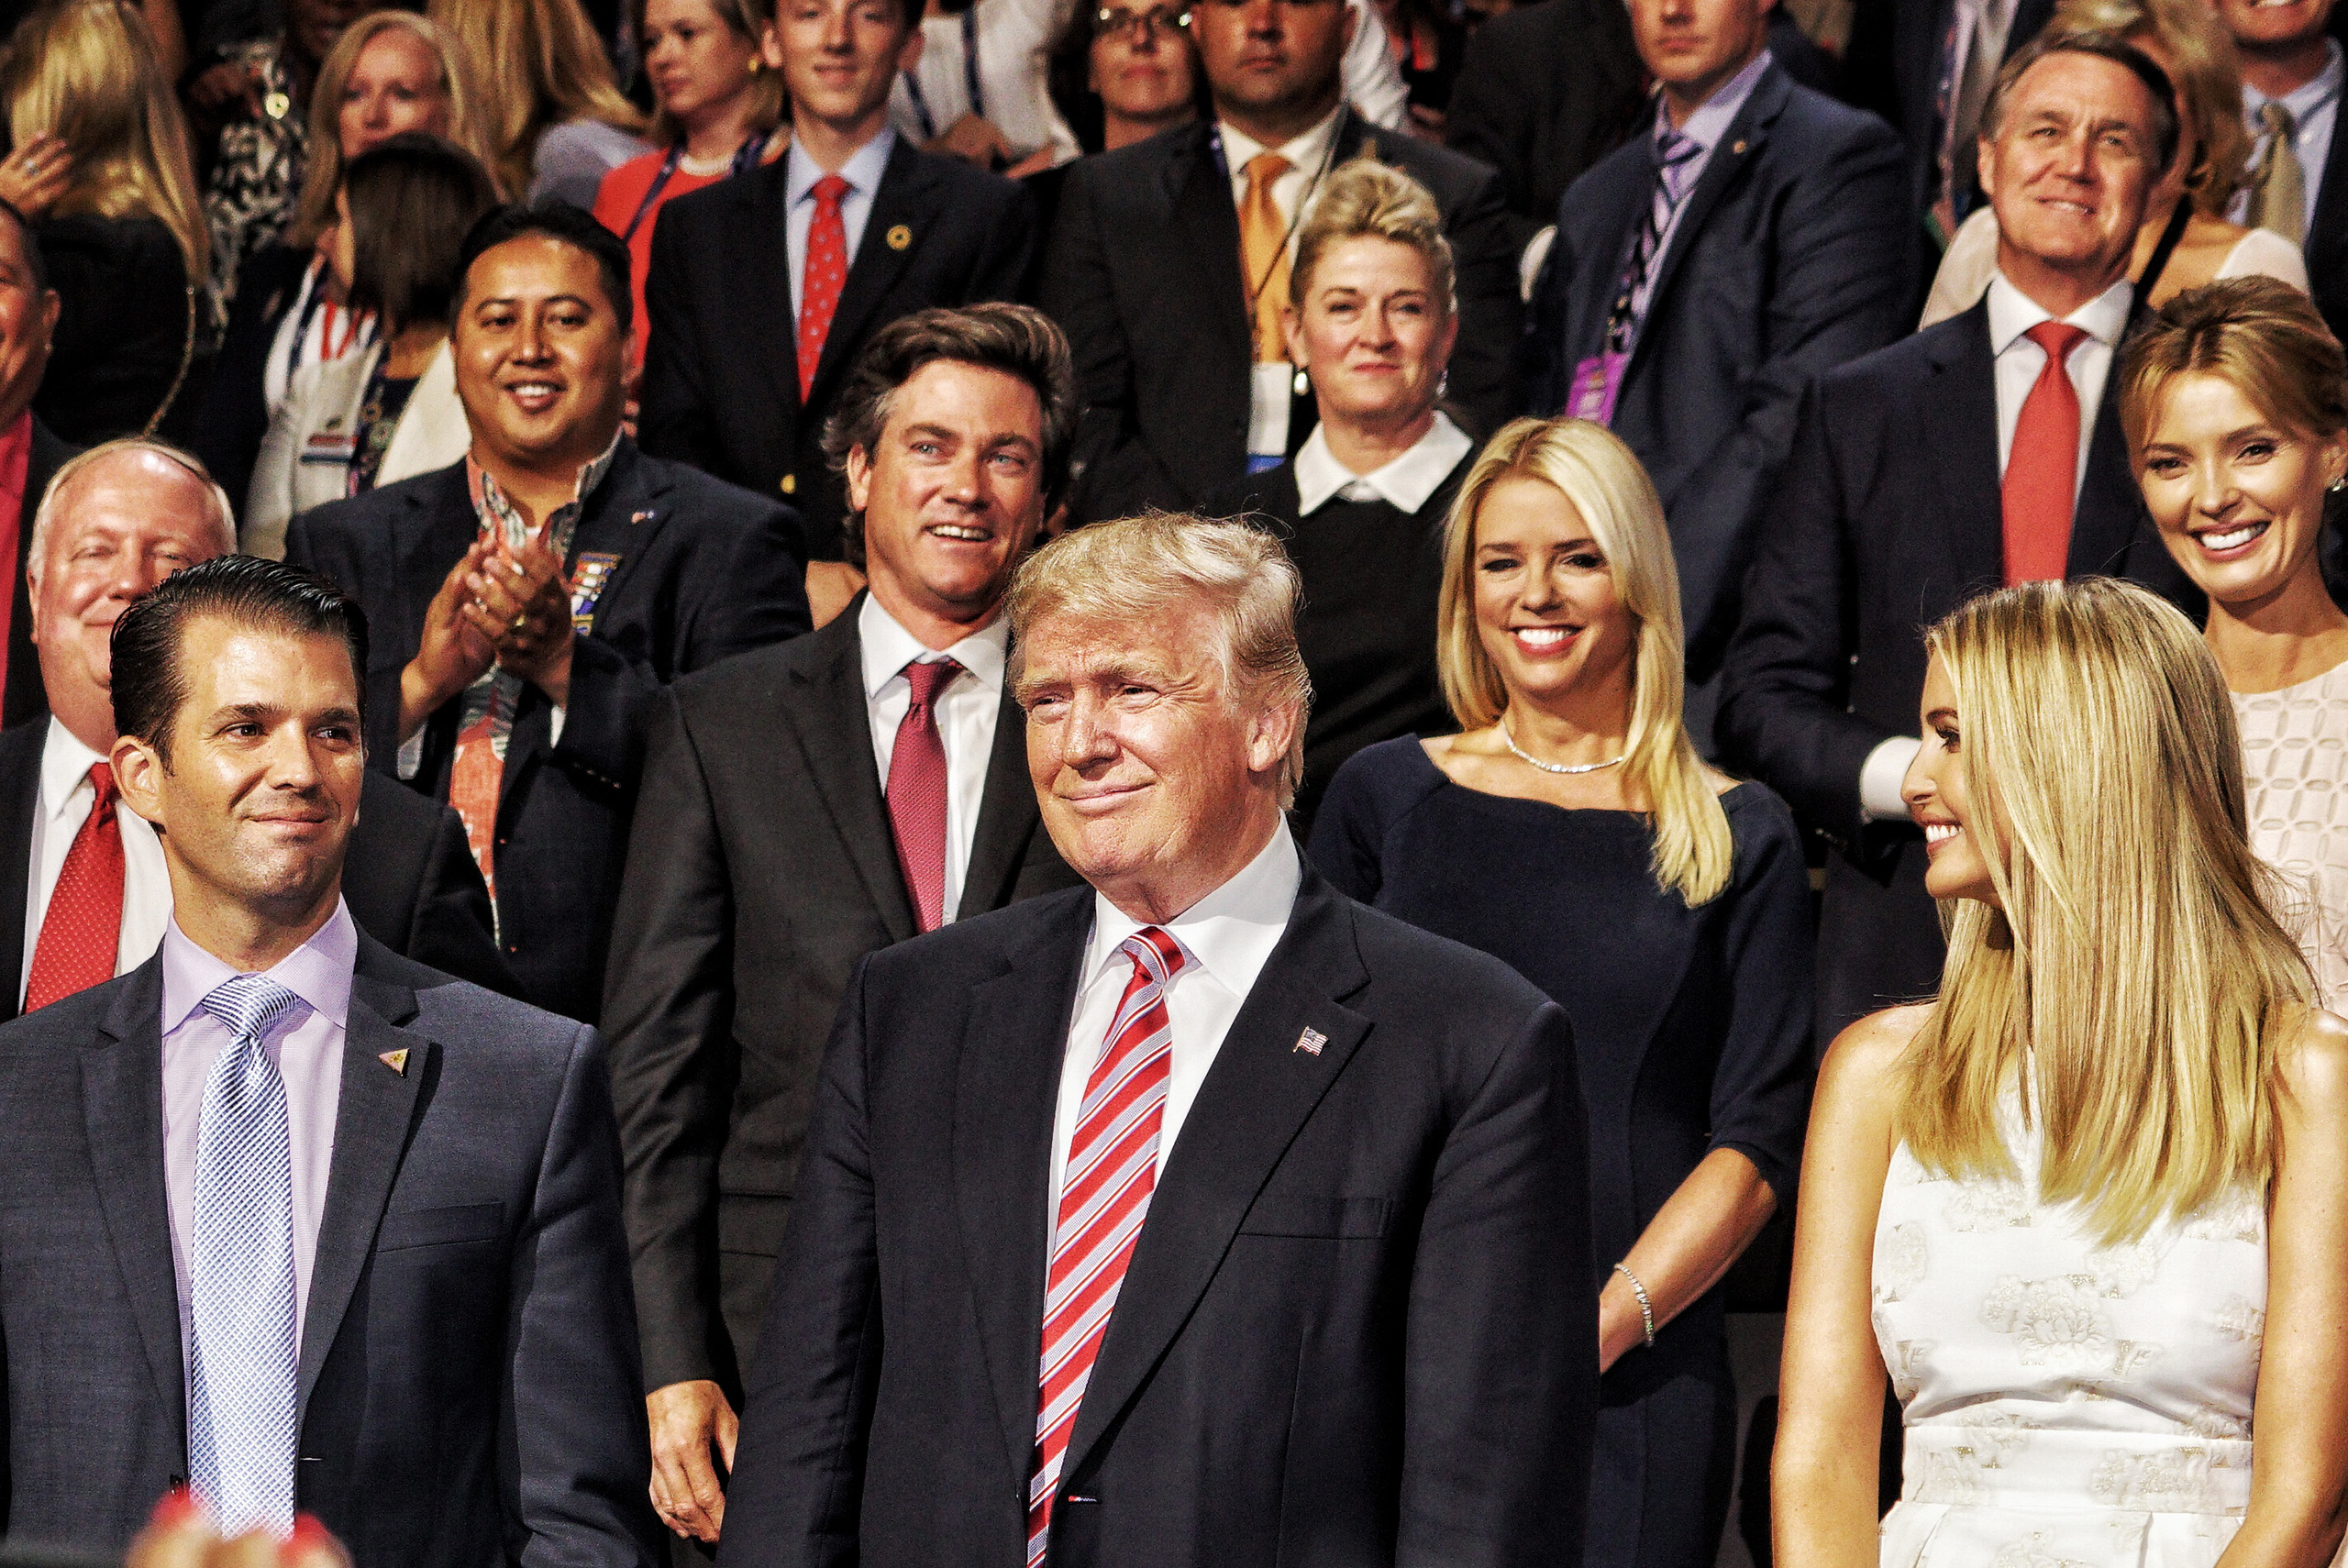 Republican presidential candidate Donald Trump and his family listen to speeches on July 20, 2016, at the Quicken Loans Arena in Cleveland, Ohio.